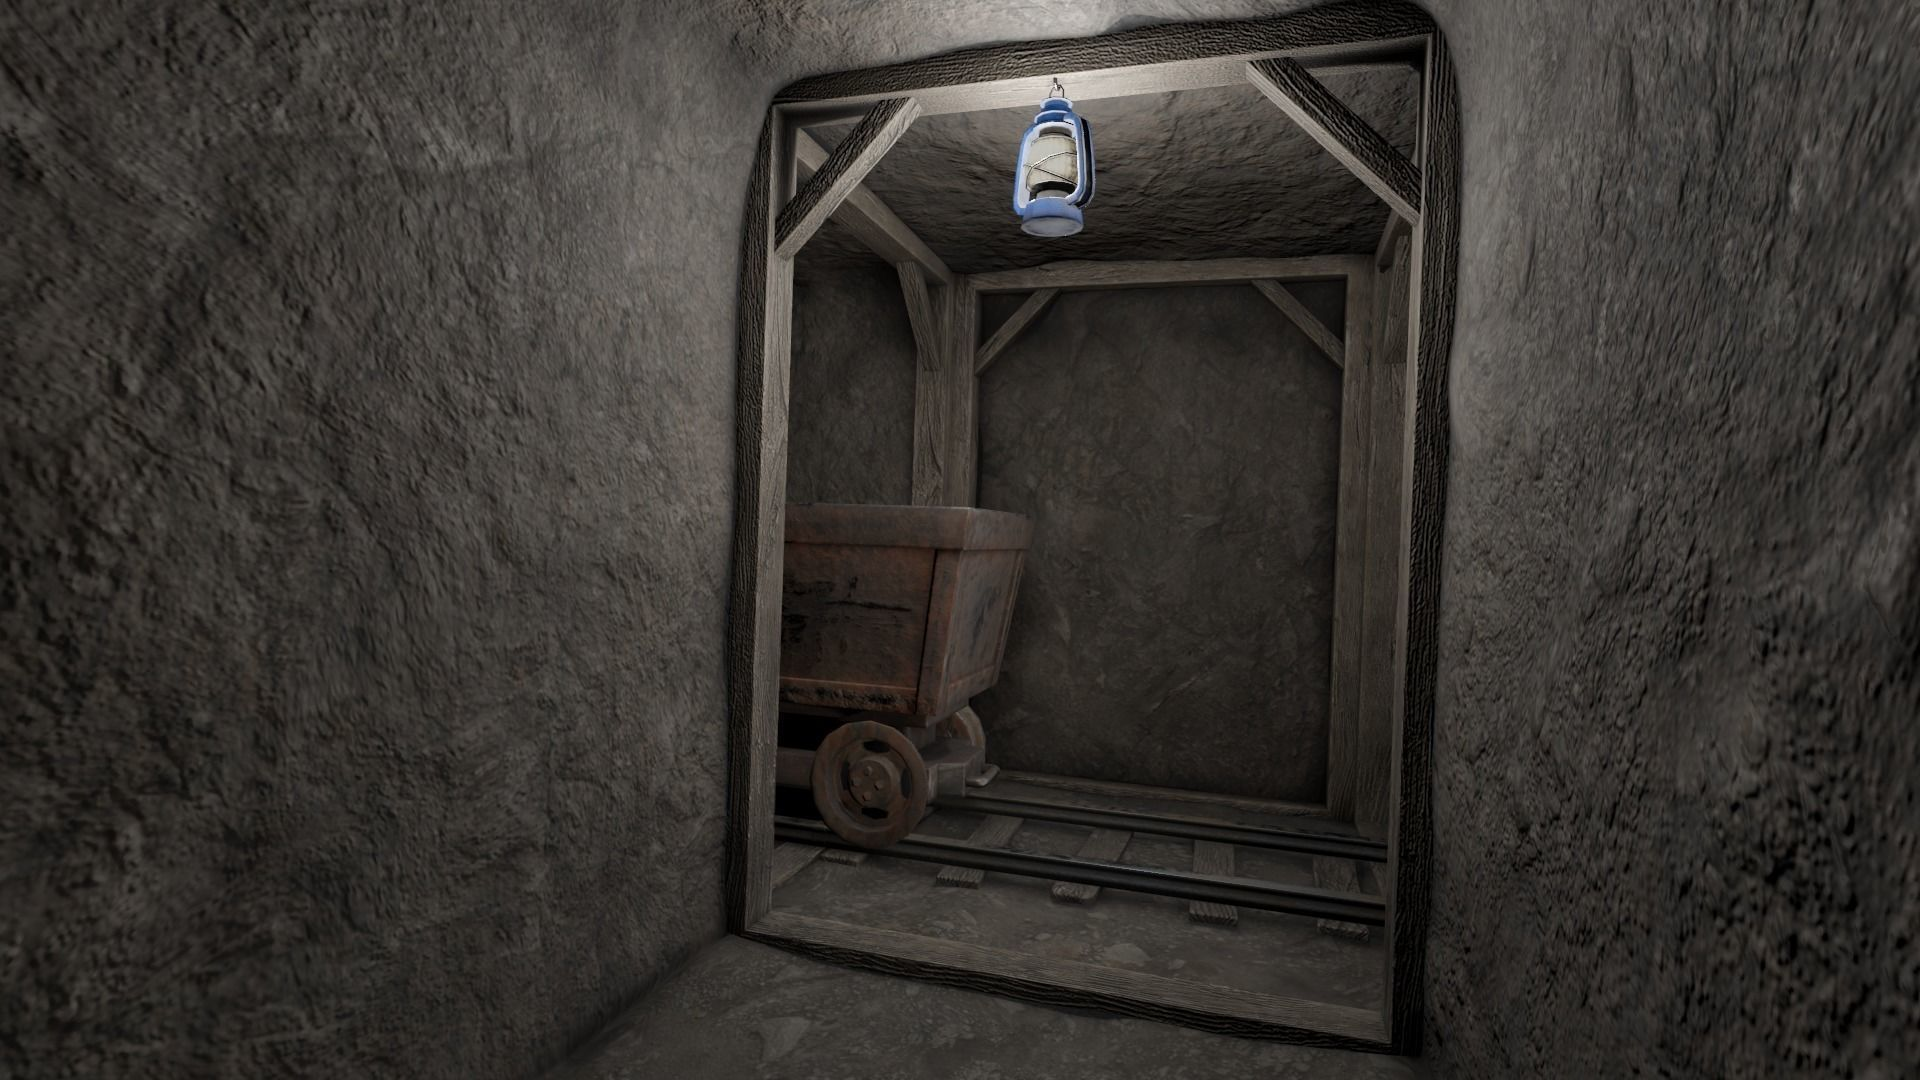 Low Poly Modular Mine Shaft With PBR Materials